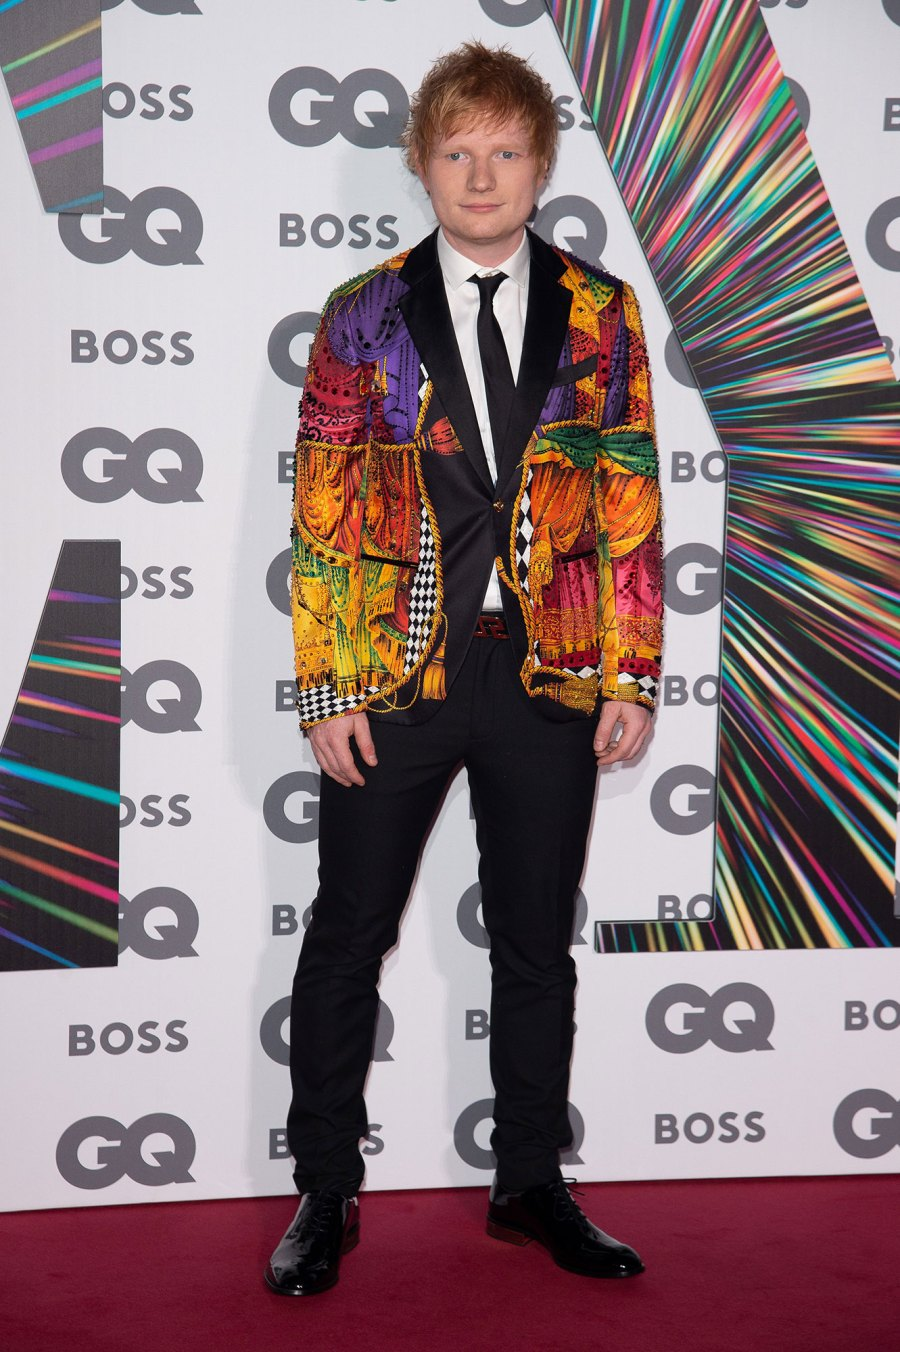 See the Best Dressed Stars, Hottest Hunks at the 2021 GQ Men of the Year Awards: Photos